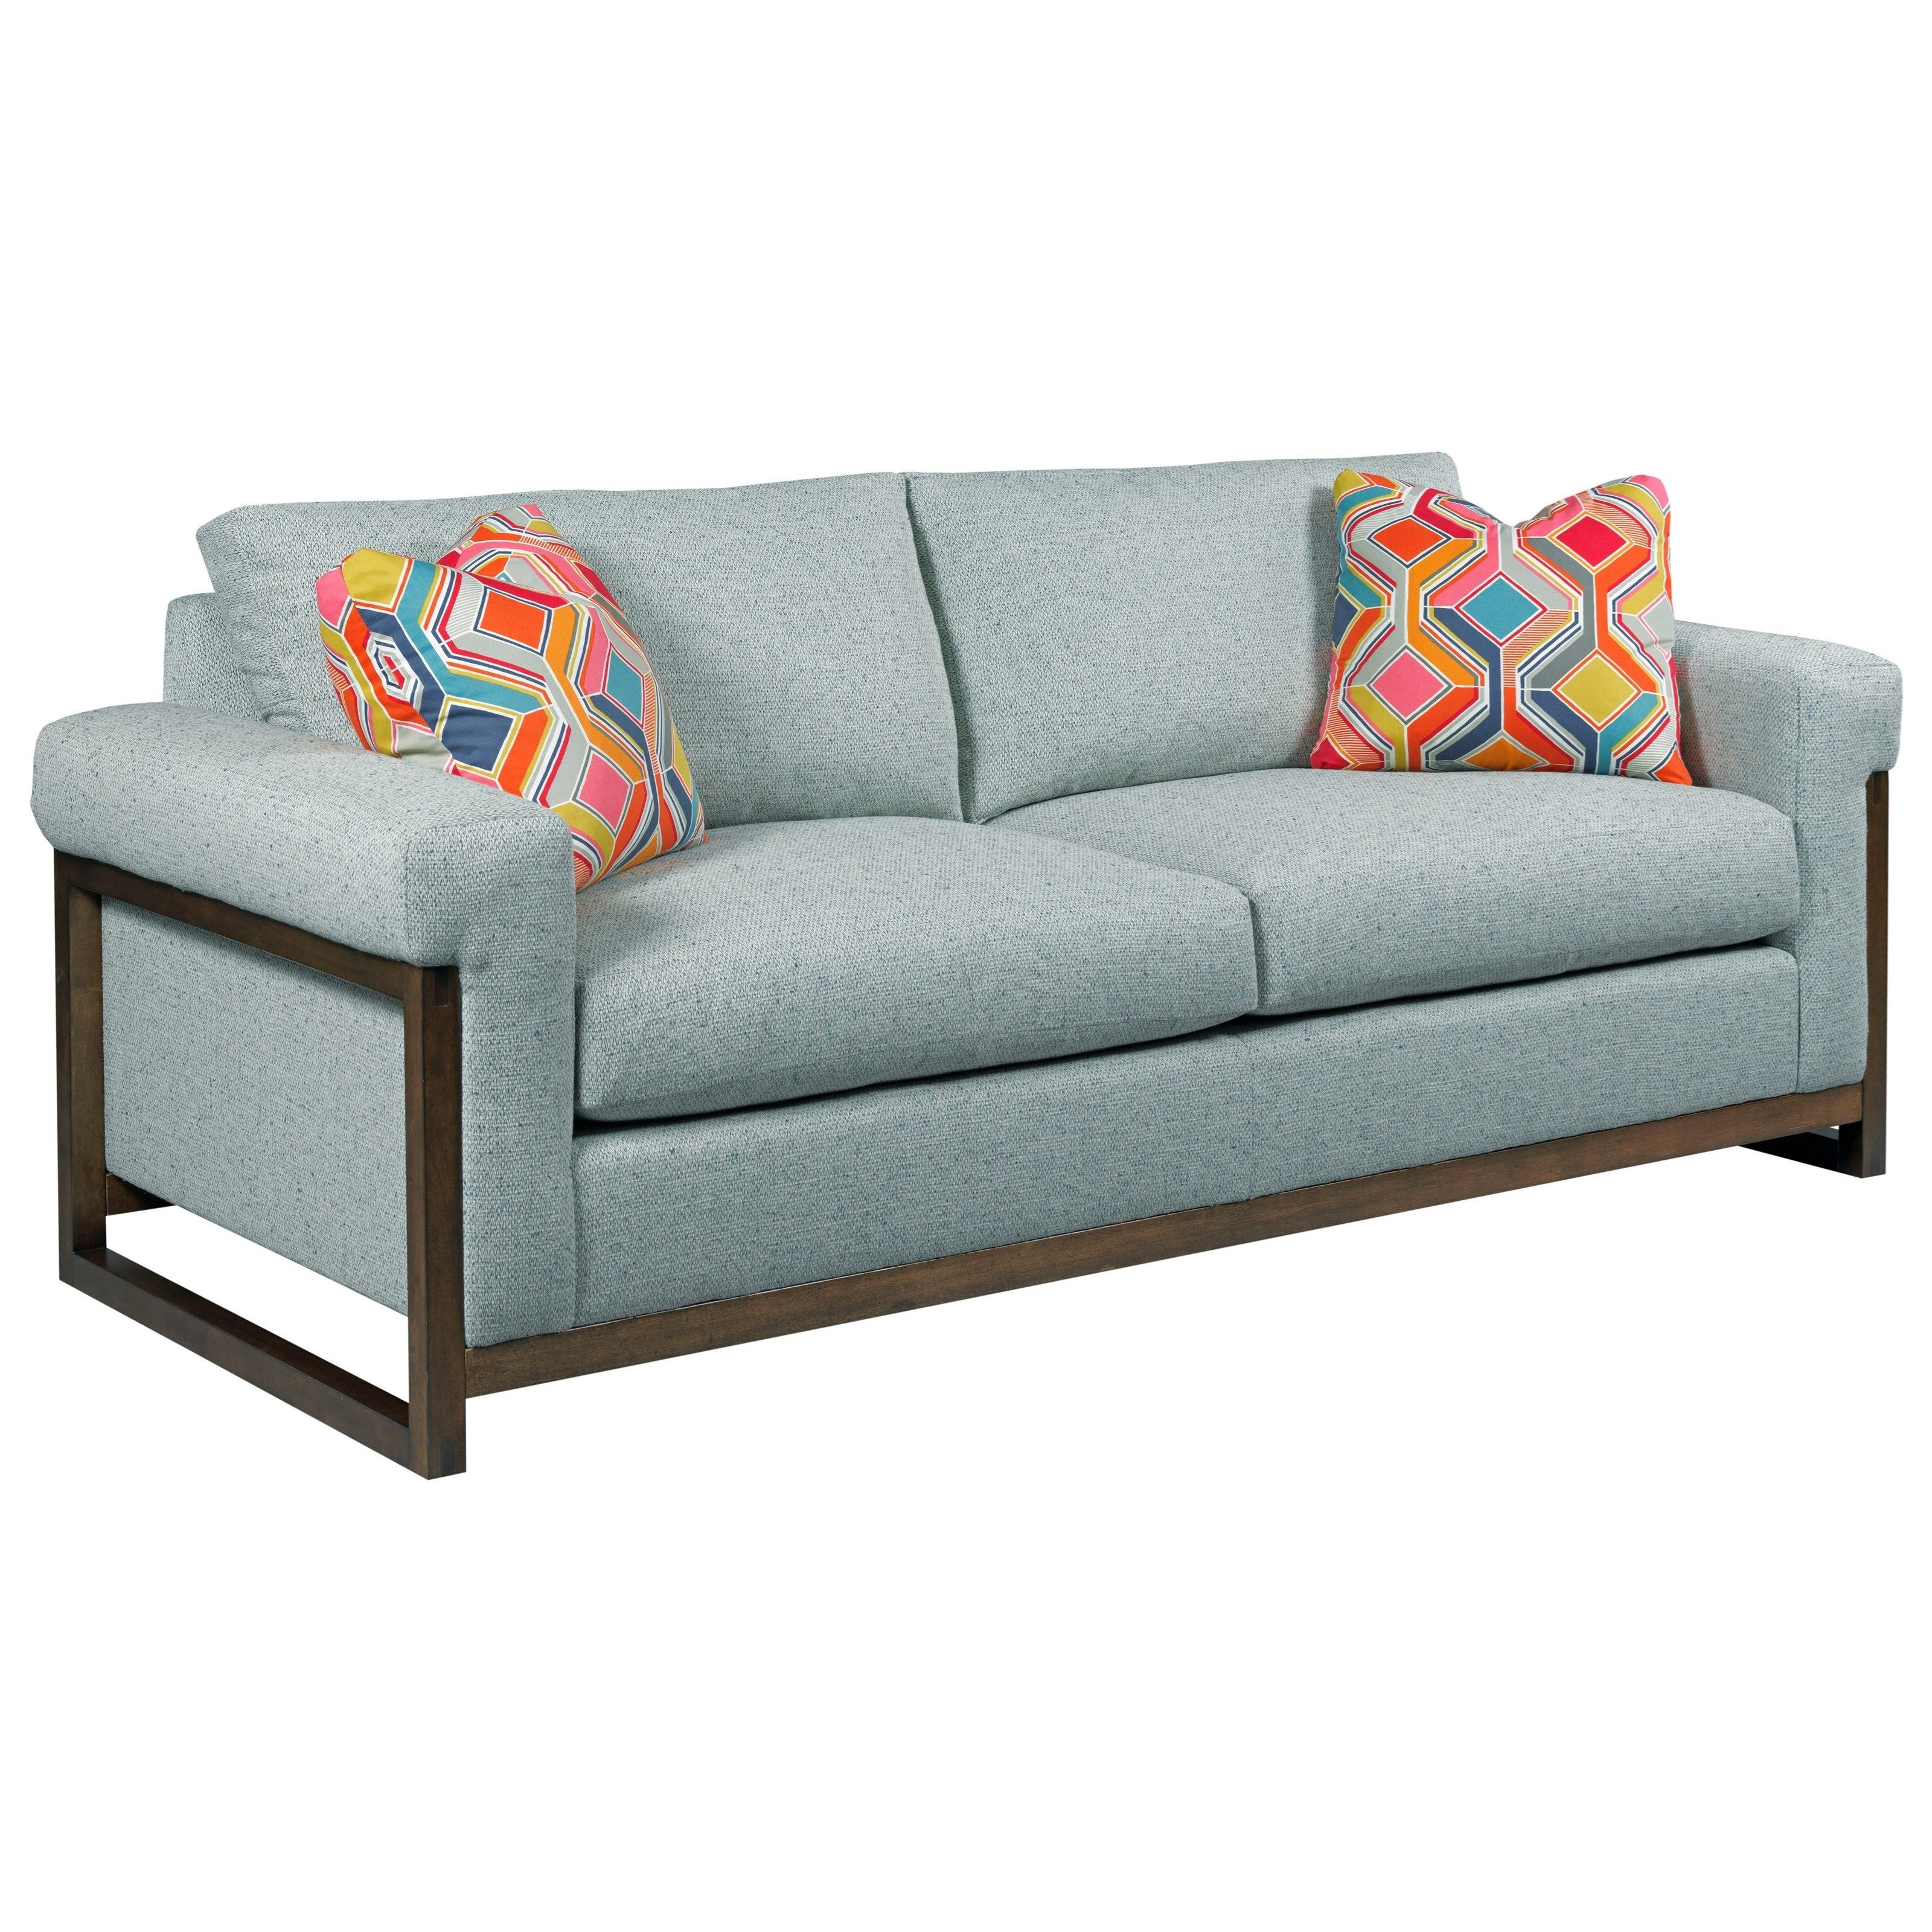 Excellent Traverse Sofa By Kincaid Furniture At Becker Furniture World Ocoug Best Dining Table And Chair Ideas Images Ocougorg